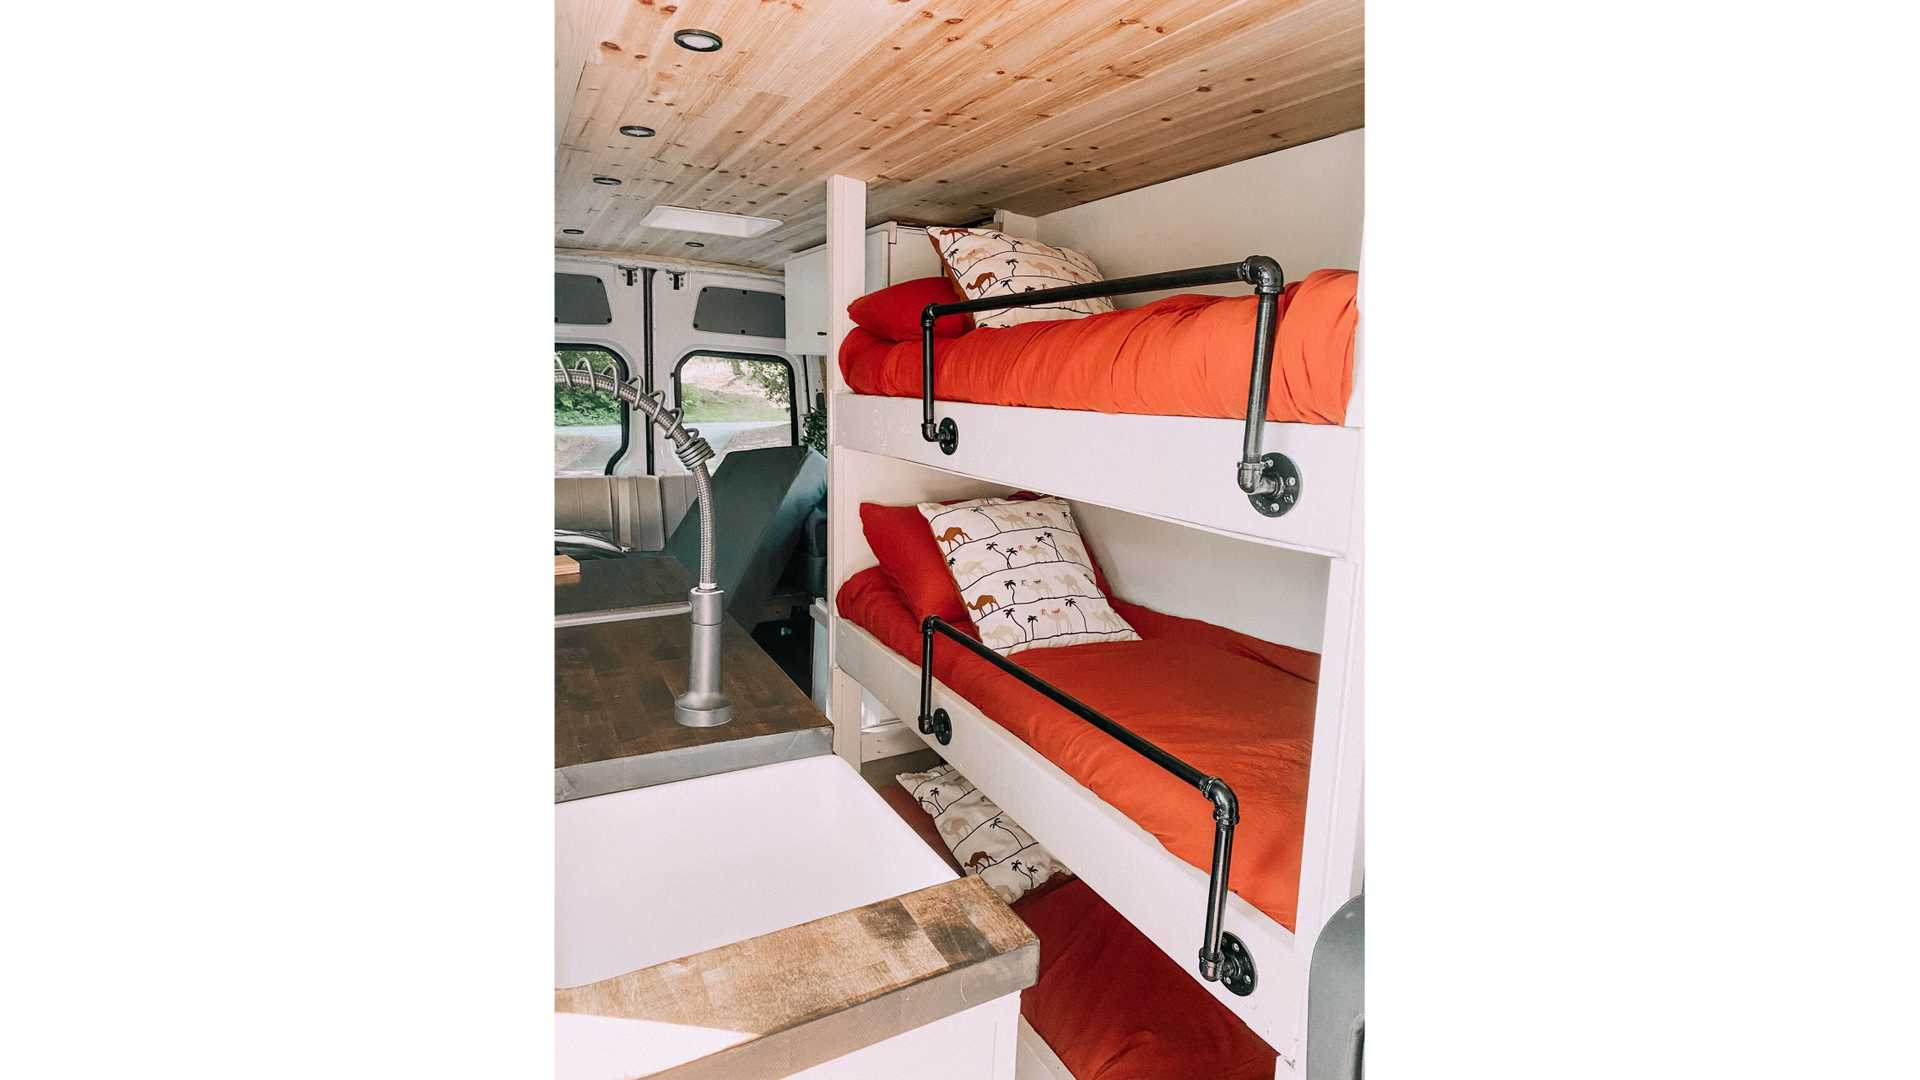 https://cdn.motor1.com/images/mgl/nOZno/s6/family-road-trip-custom-camper-with-bunk-beds-front.jpg